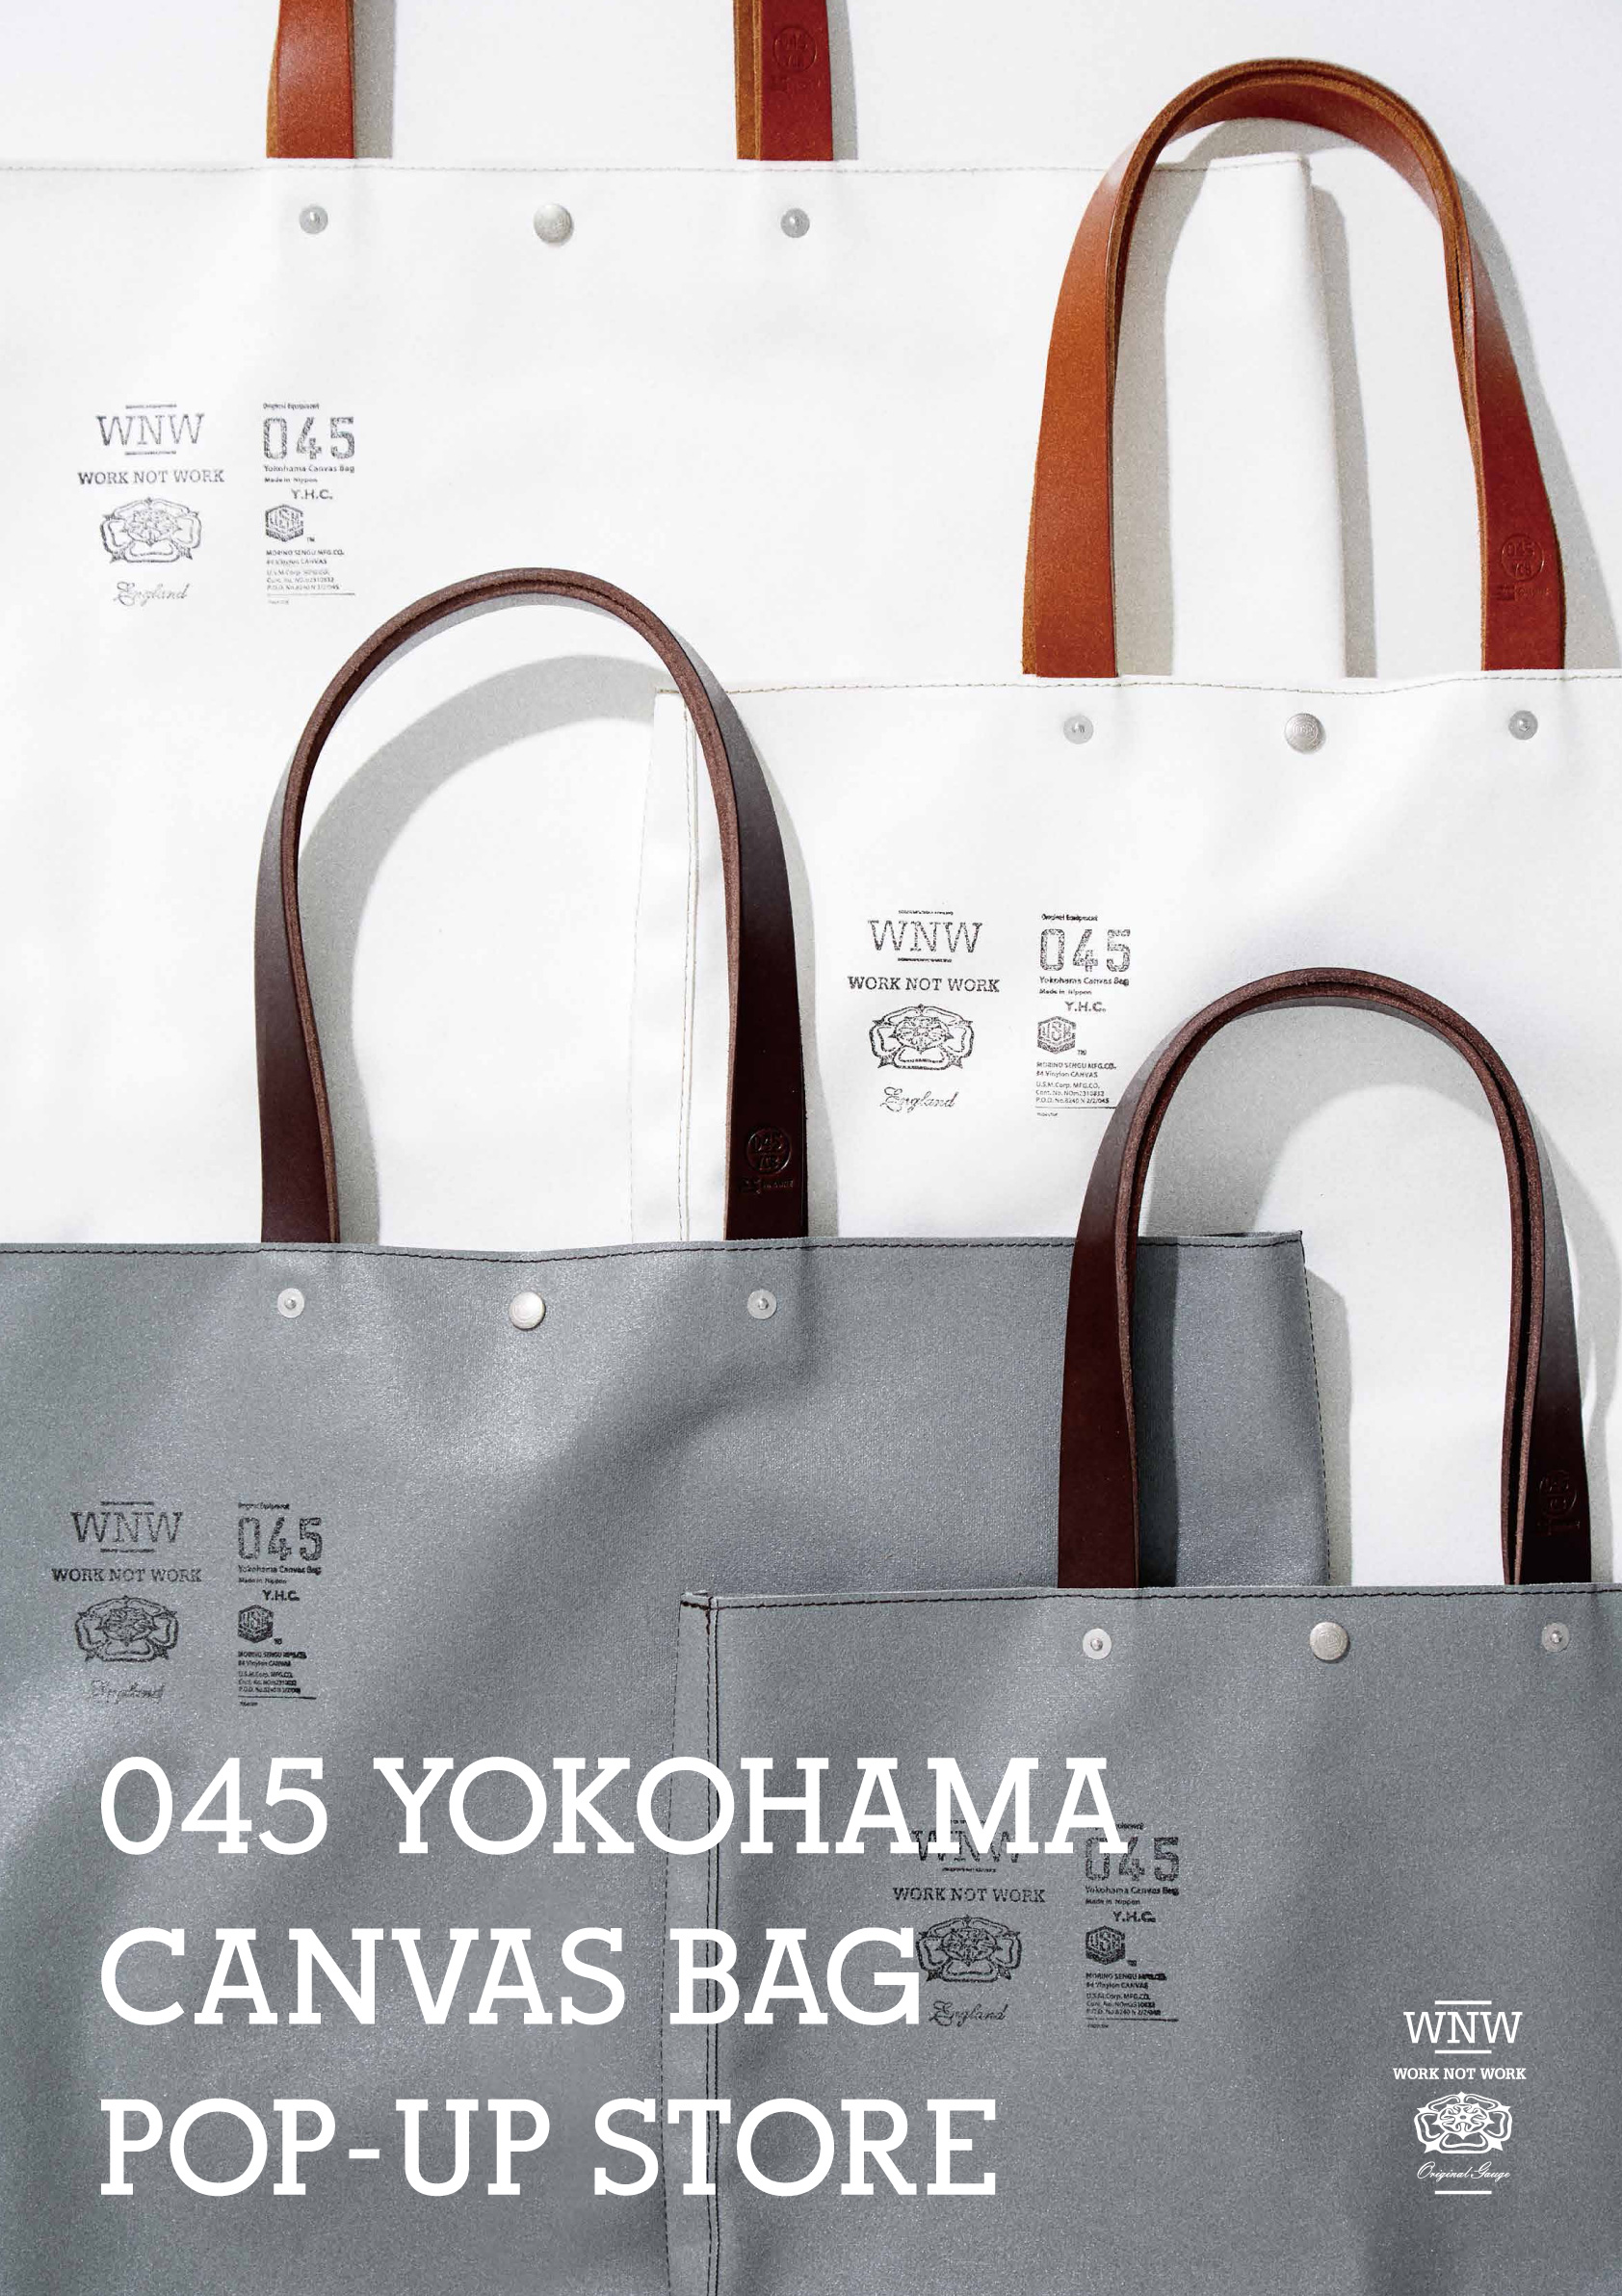 045 YOKOHAMA CANVAS BAG